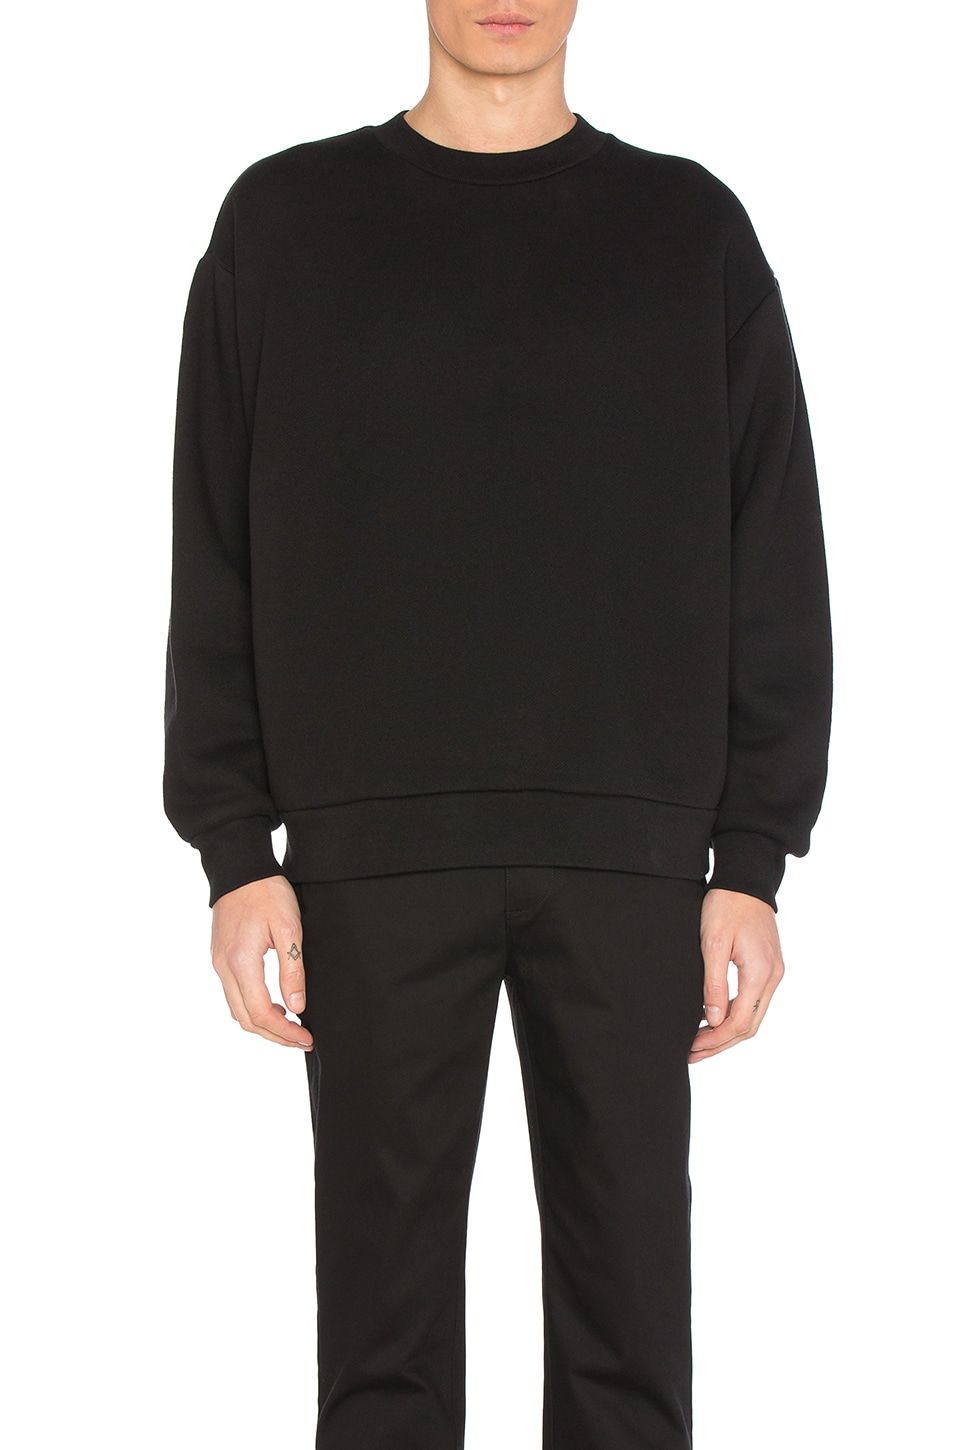 Oversized Crewneck by T by Alexander Wang